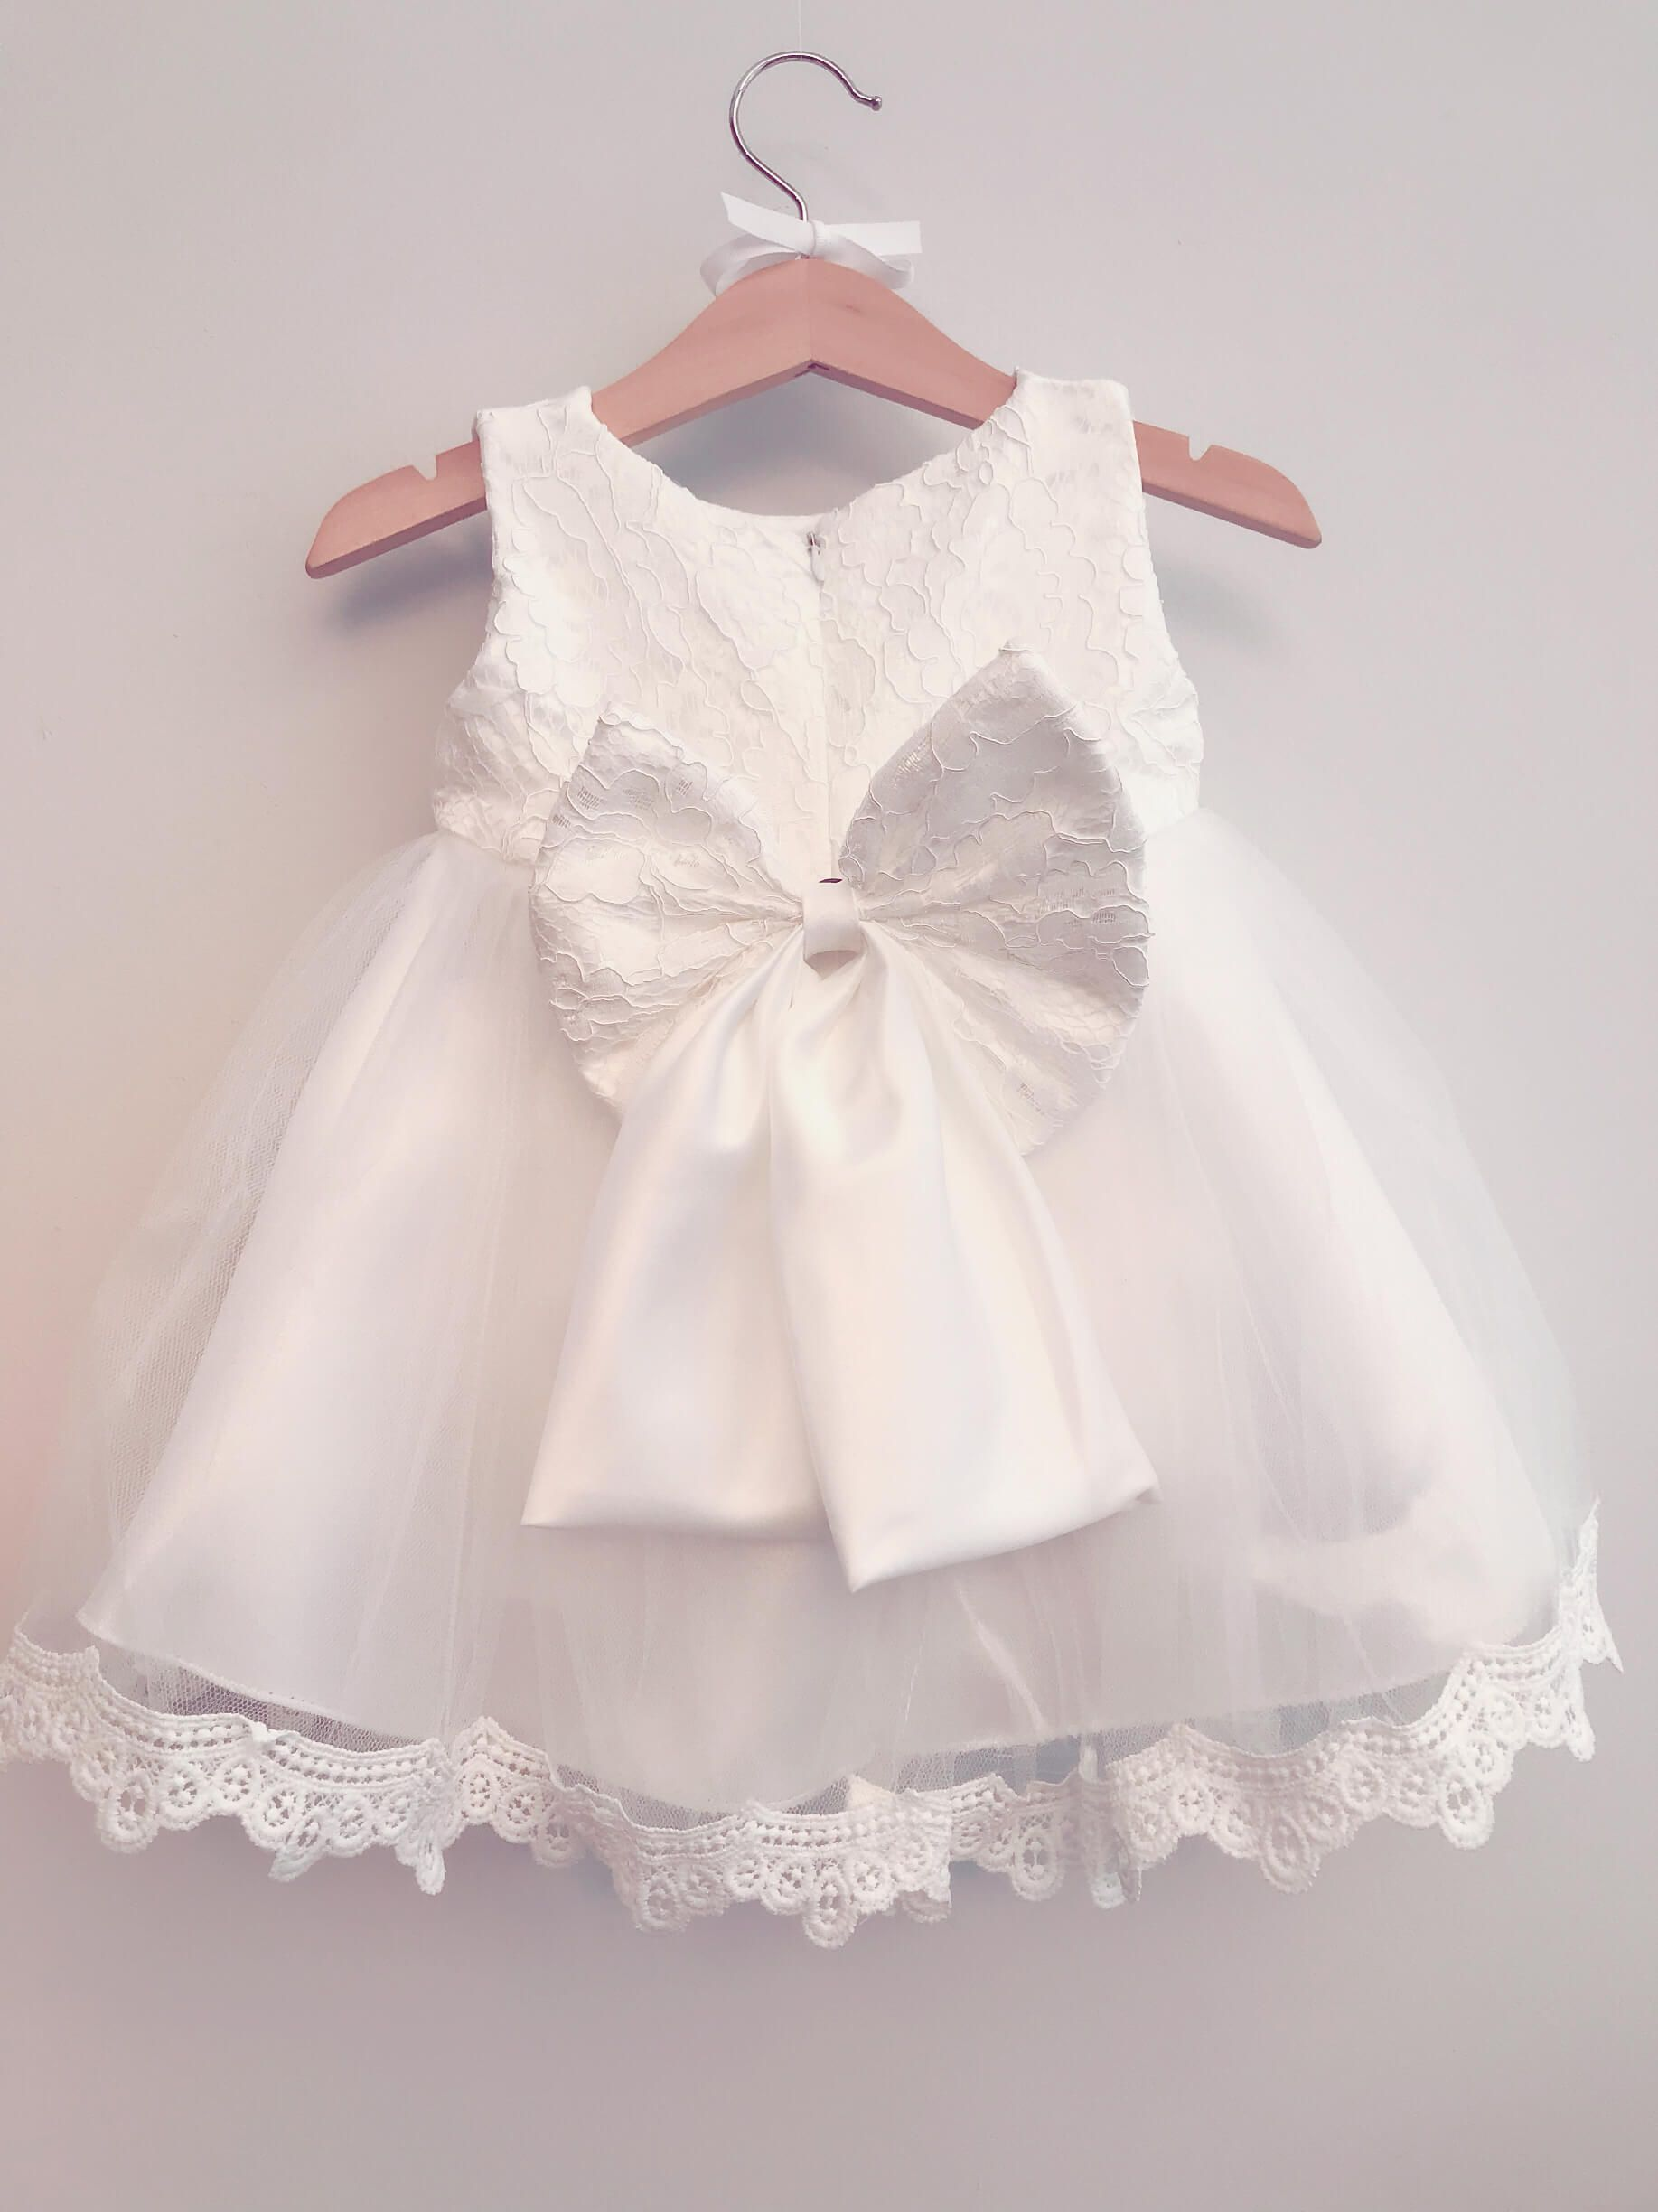 66723189c How beautiful is this White Princess Bow Dress? Only £19.95 😍 View Here: